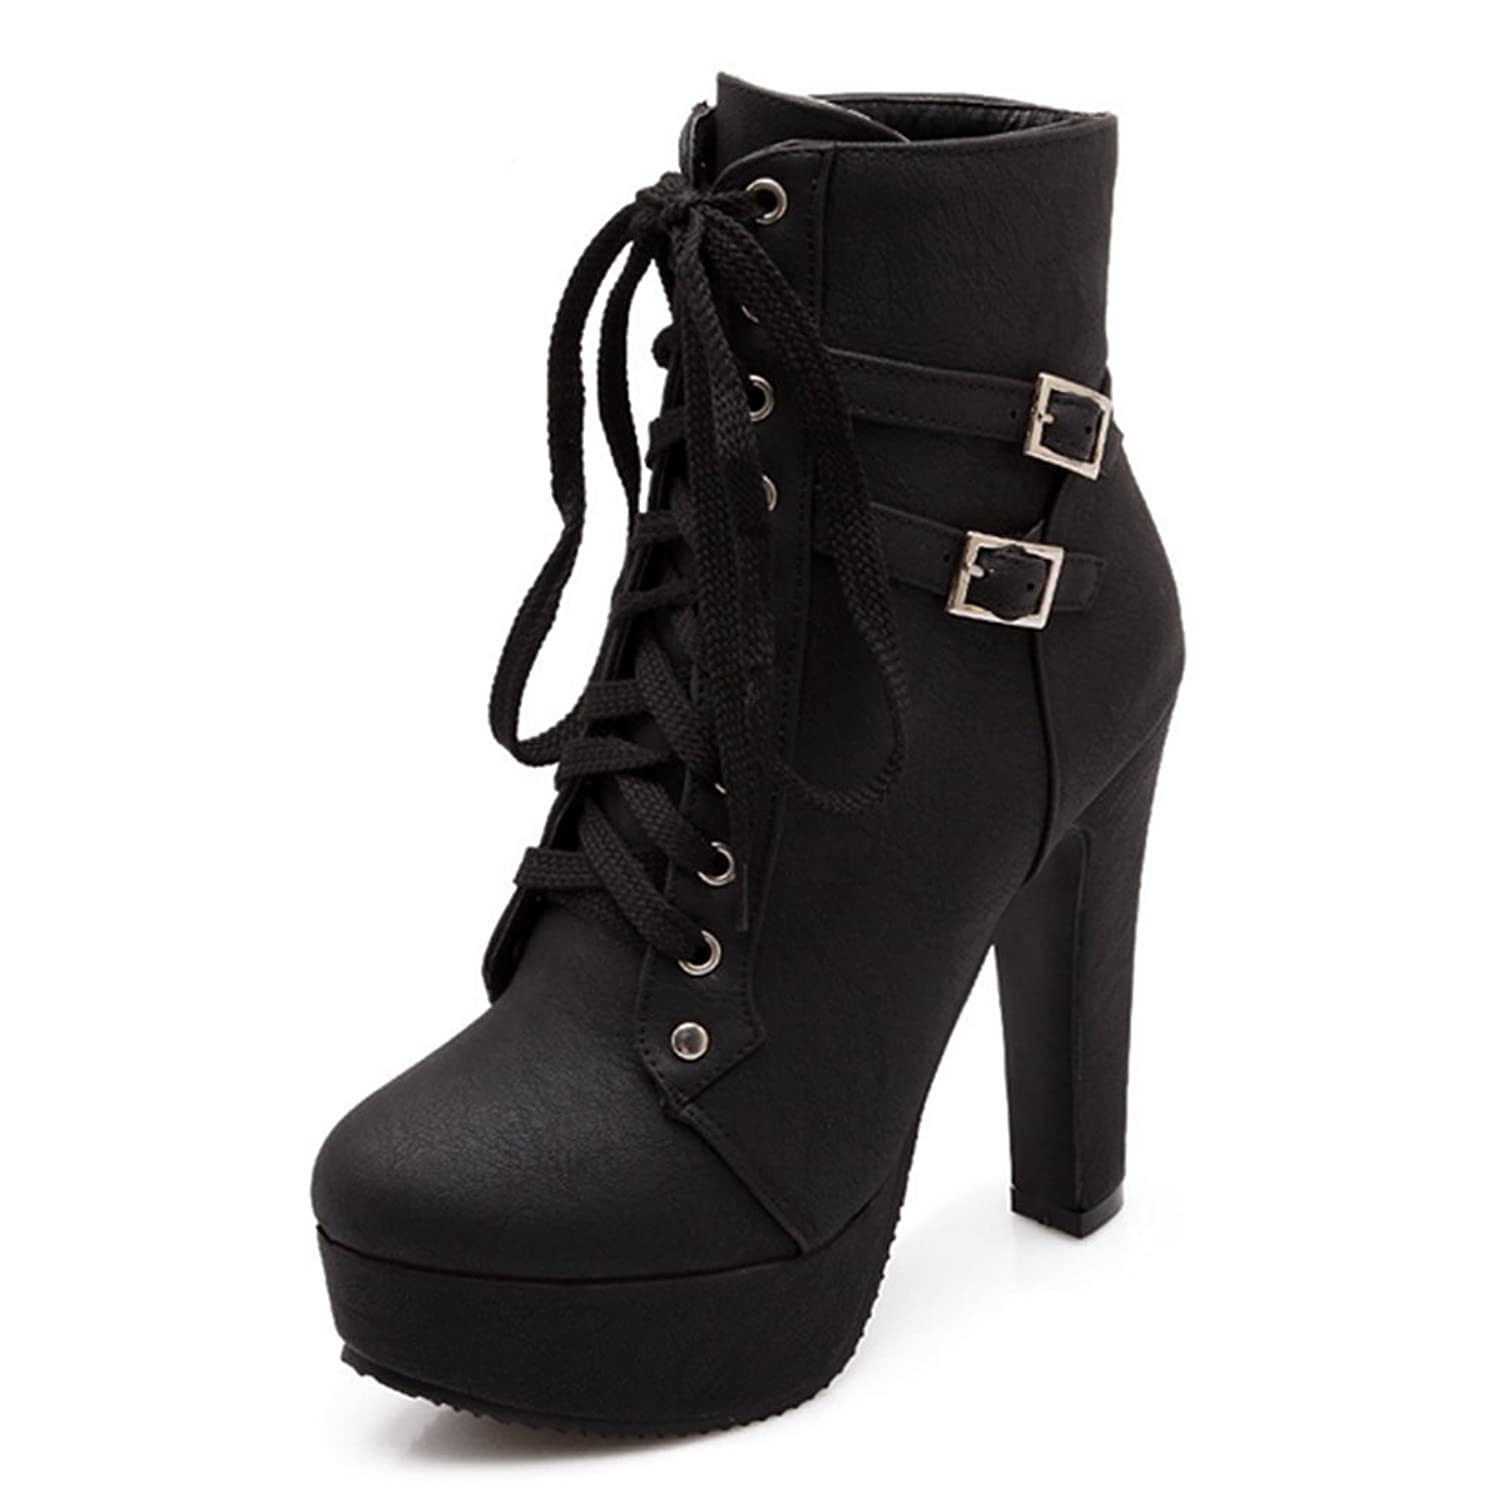 Women's Lace Up High Heel Platform Ankle Booties Sexy Platform Shoes Dress Stiletto Pumps Bootie Size6-10.5